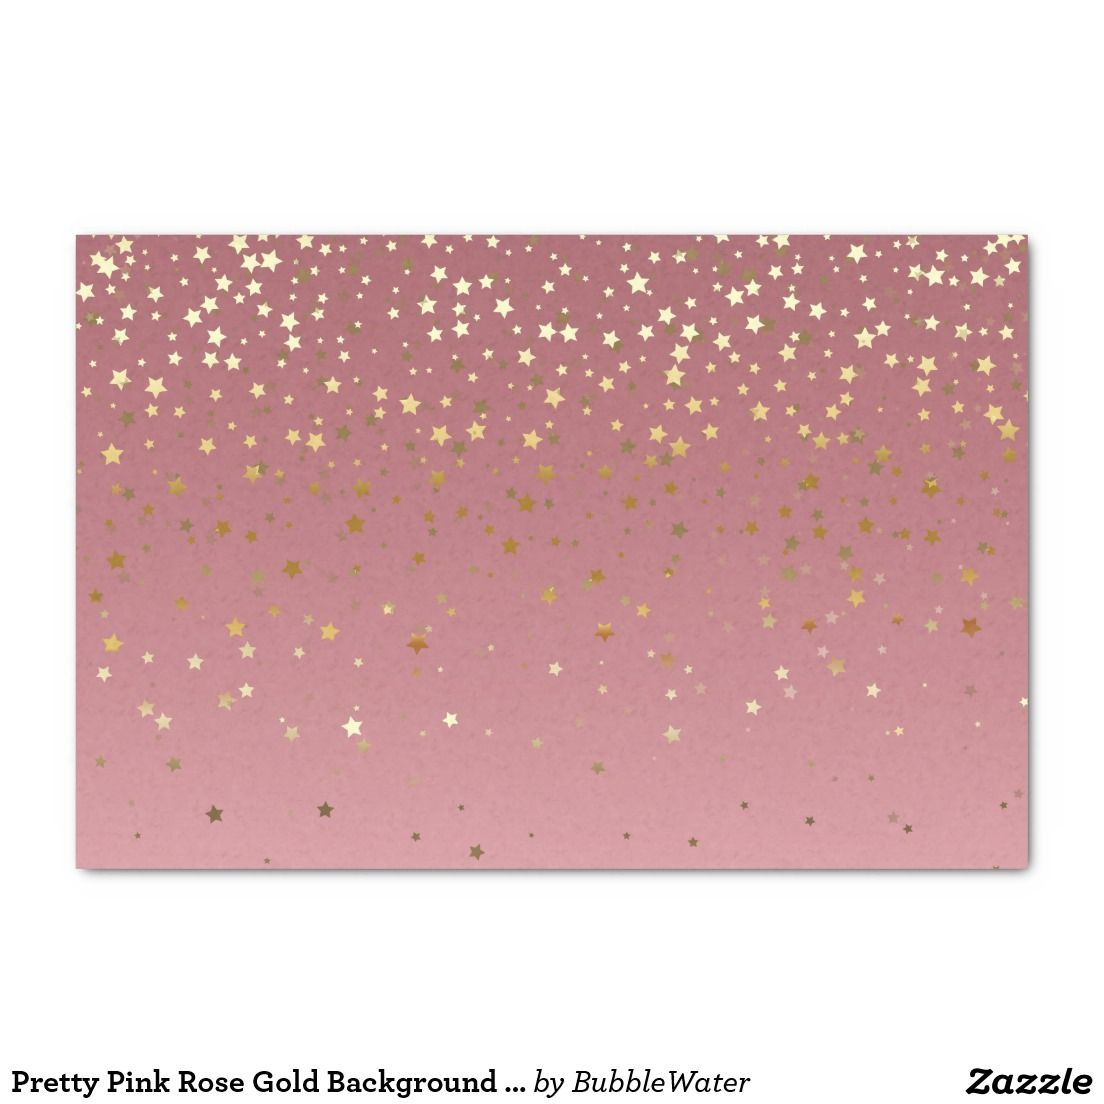 c9a50704ad2a Pretty Pink Rose Gold Background And Glitter Stars 10